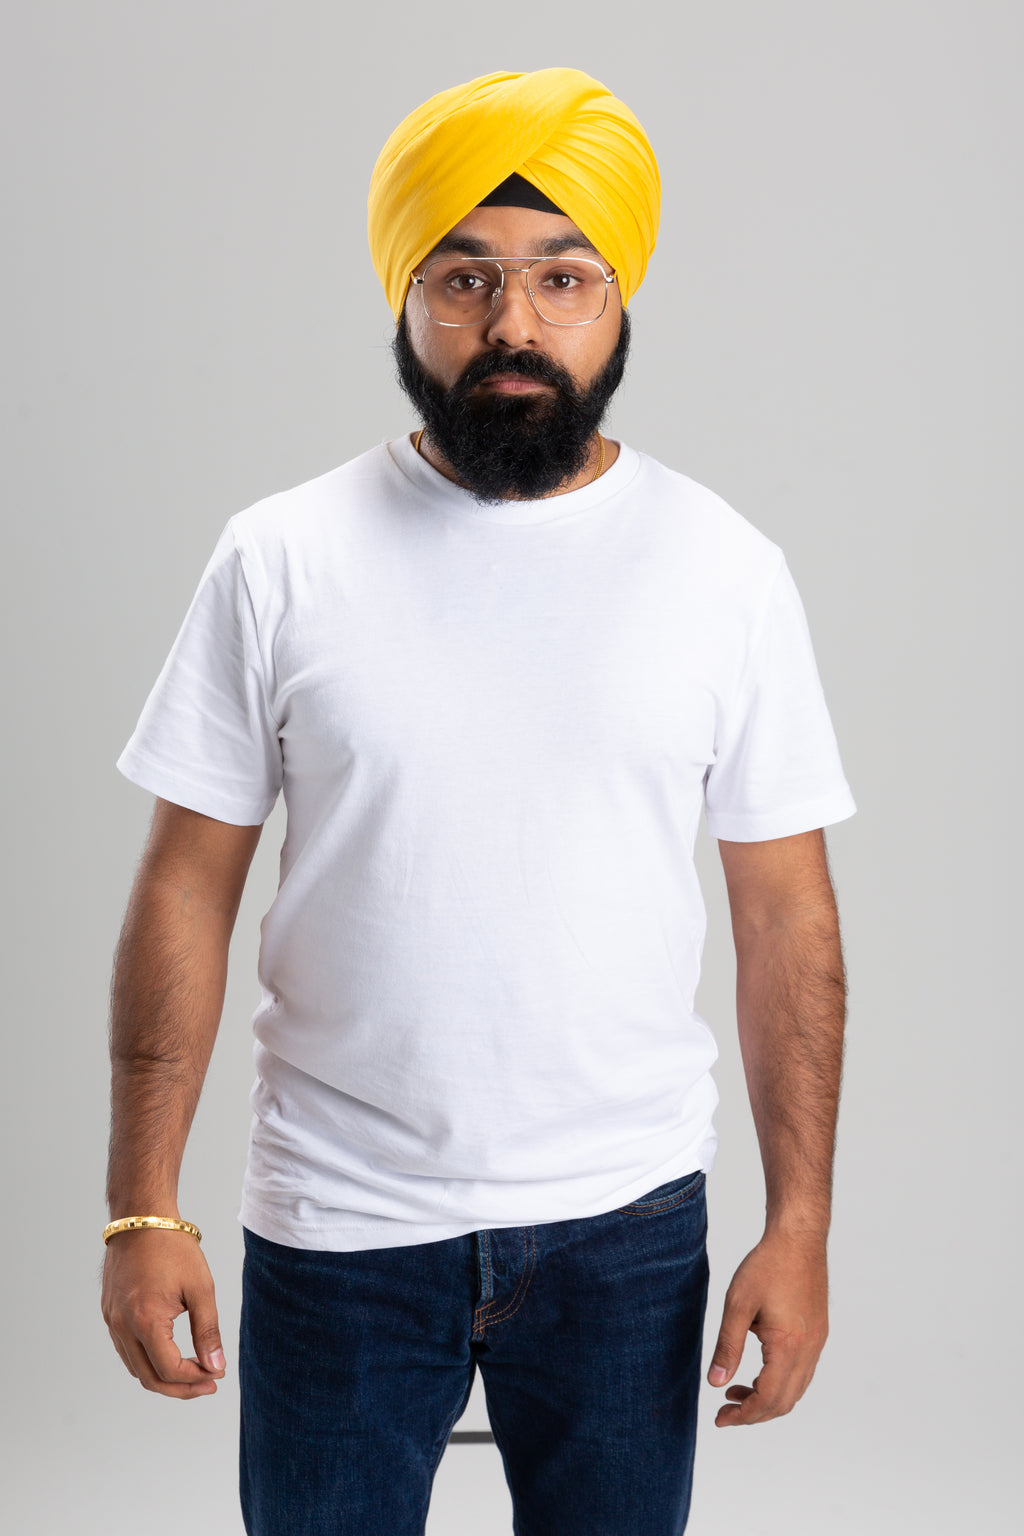 Sikh Man Wearing a Yellow Turban Keski